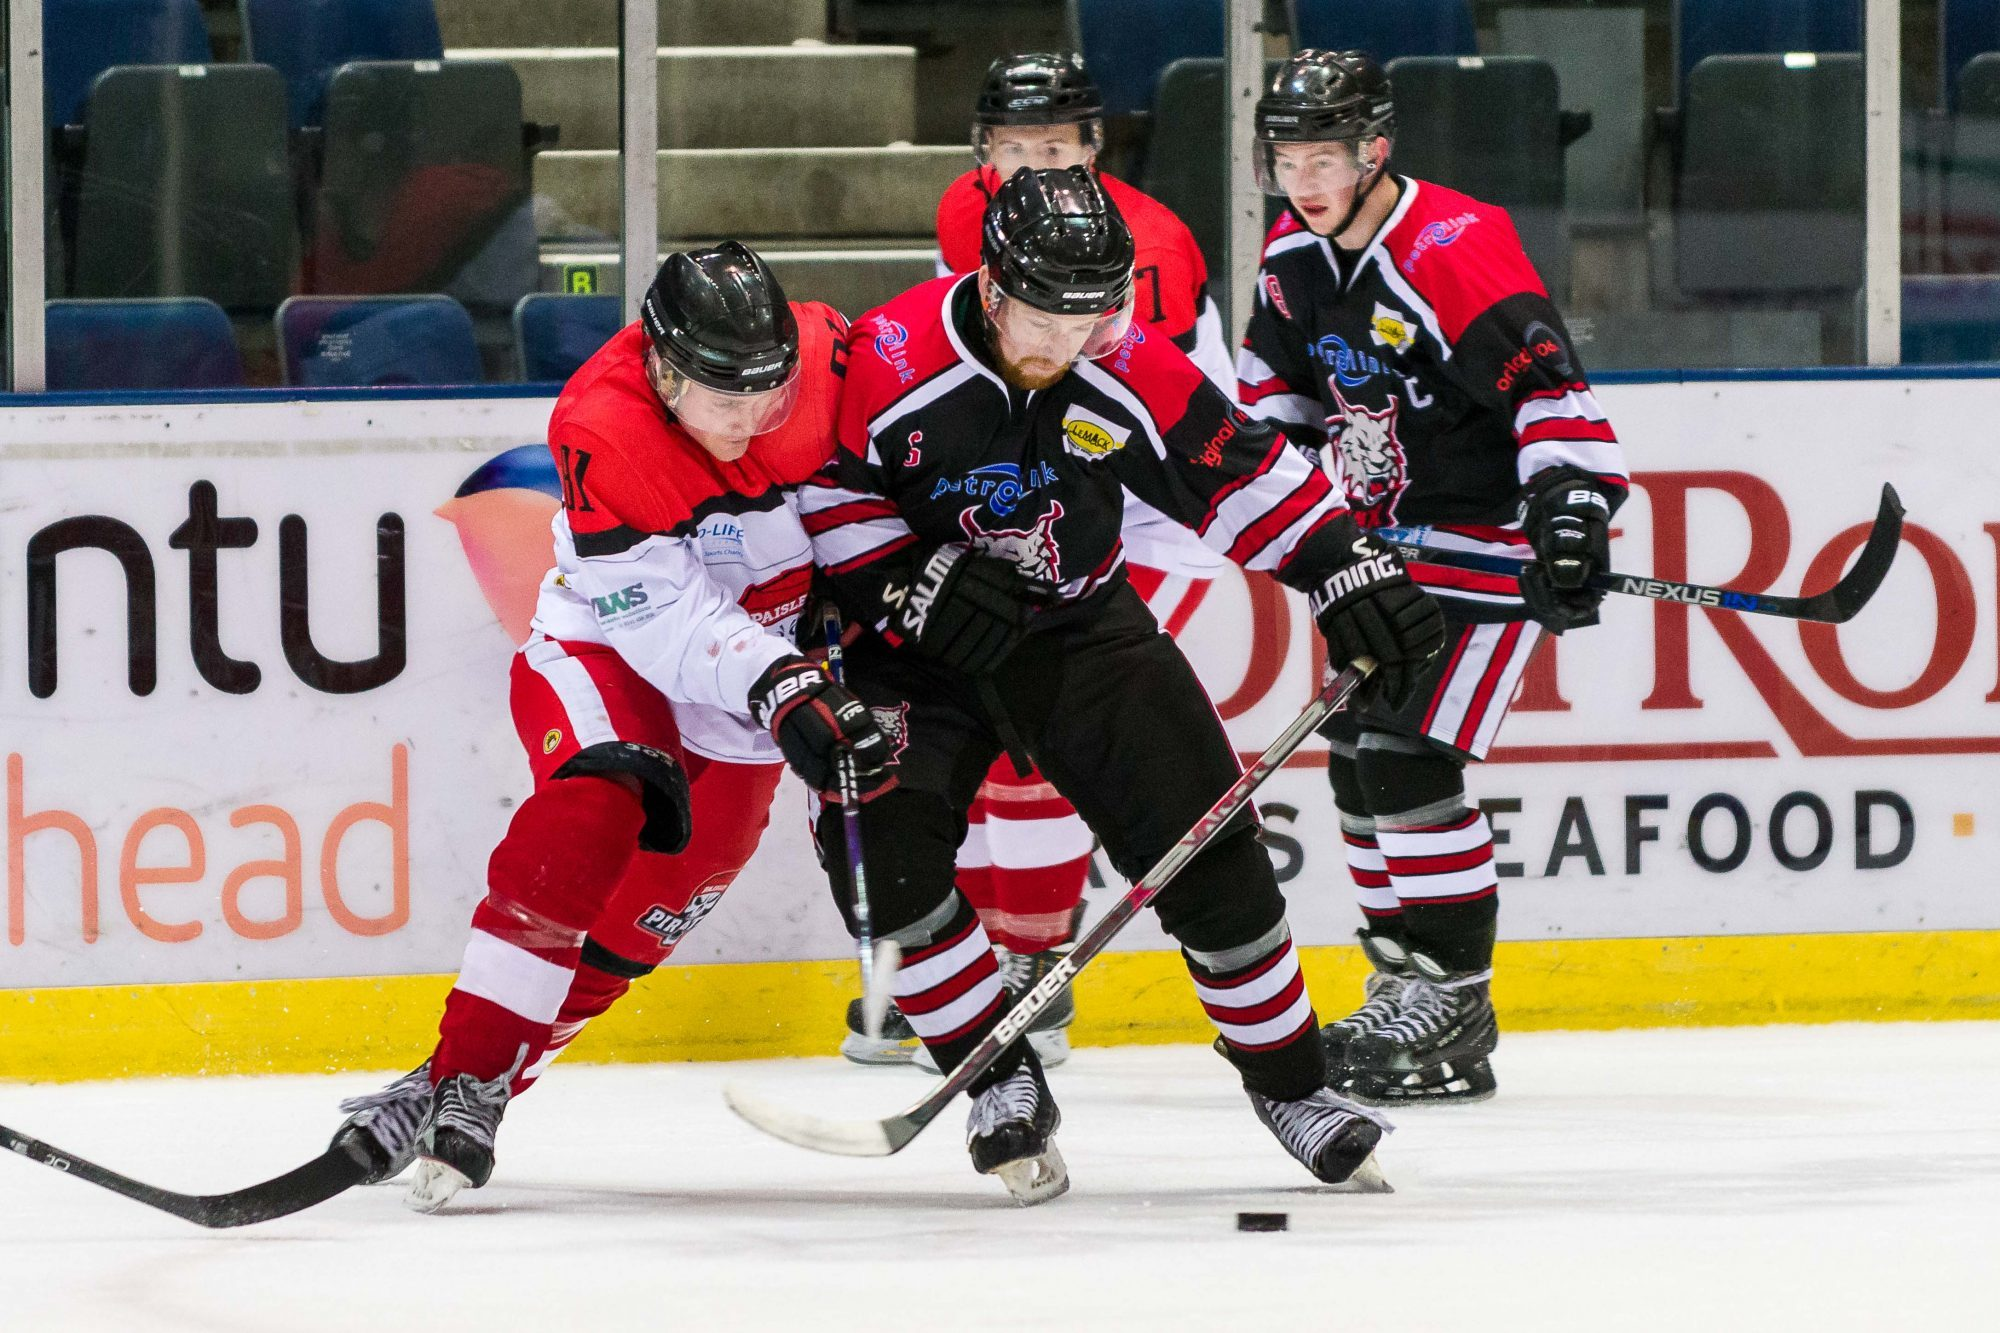 Craig Findlay of Aberdeen Lynx challenges for the puck against the Pirates.   (Picture by Al Goold)